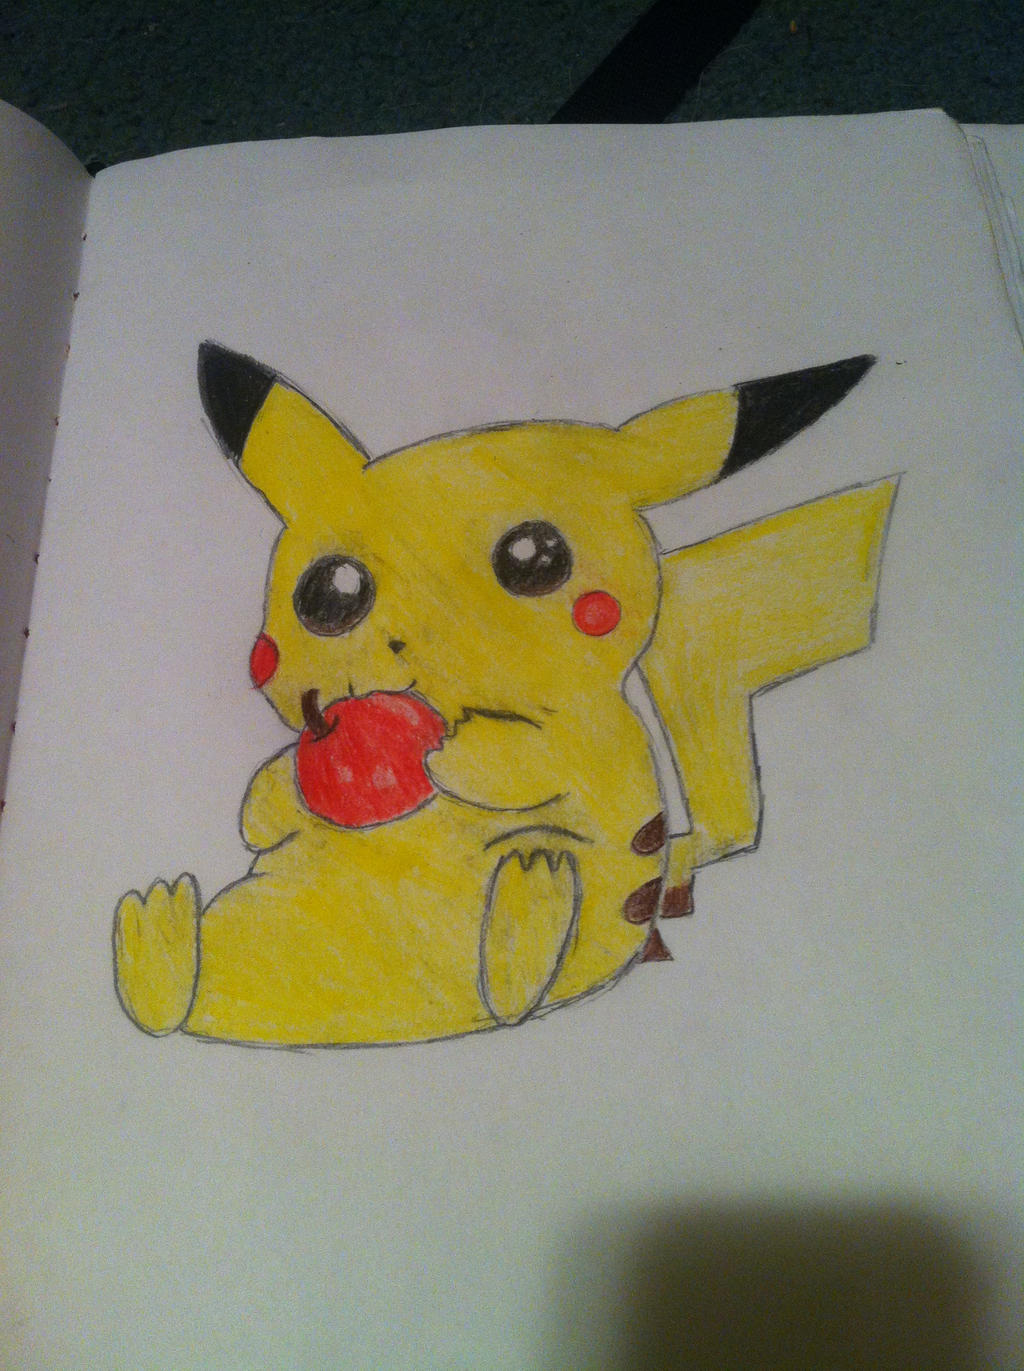 Pikachu by Bloodonmyhands25